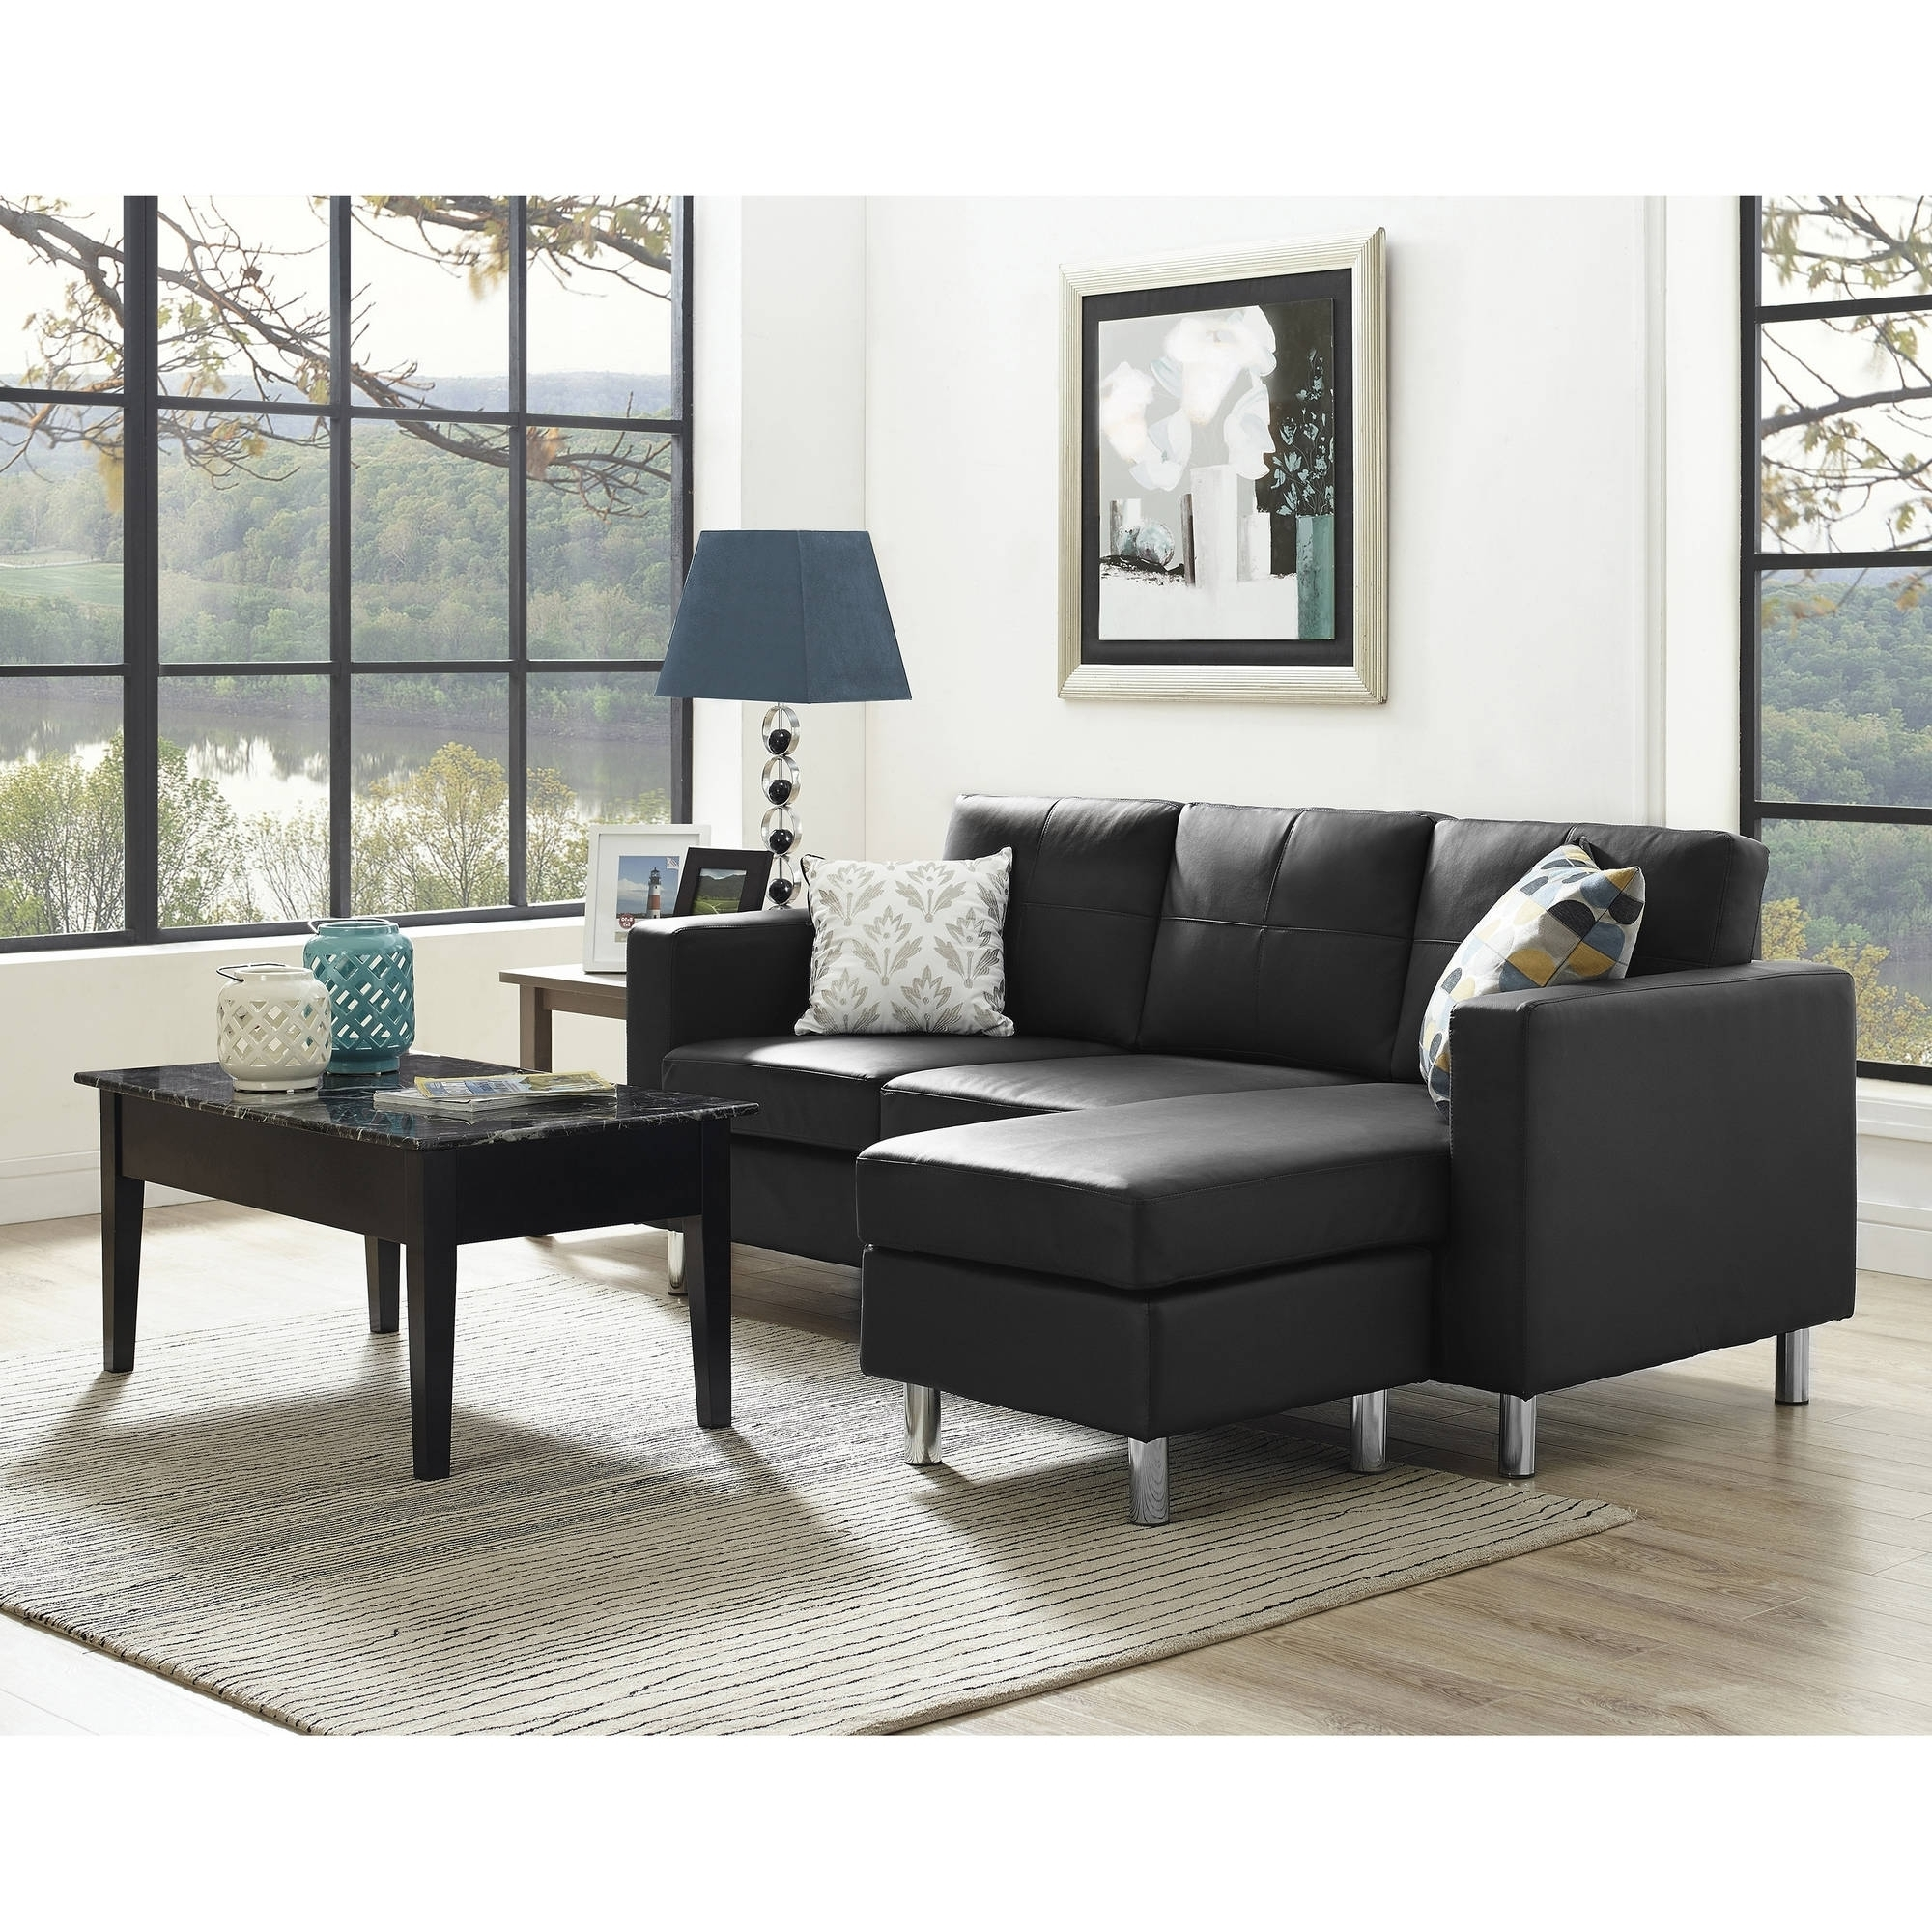 Sectional Sofas In Small Spaces With Regard To Fashionable Edge Small Sectional Sofas For Spaces Sofa Dorel Living The (View 5 of 20)